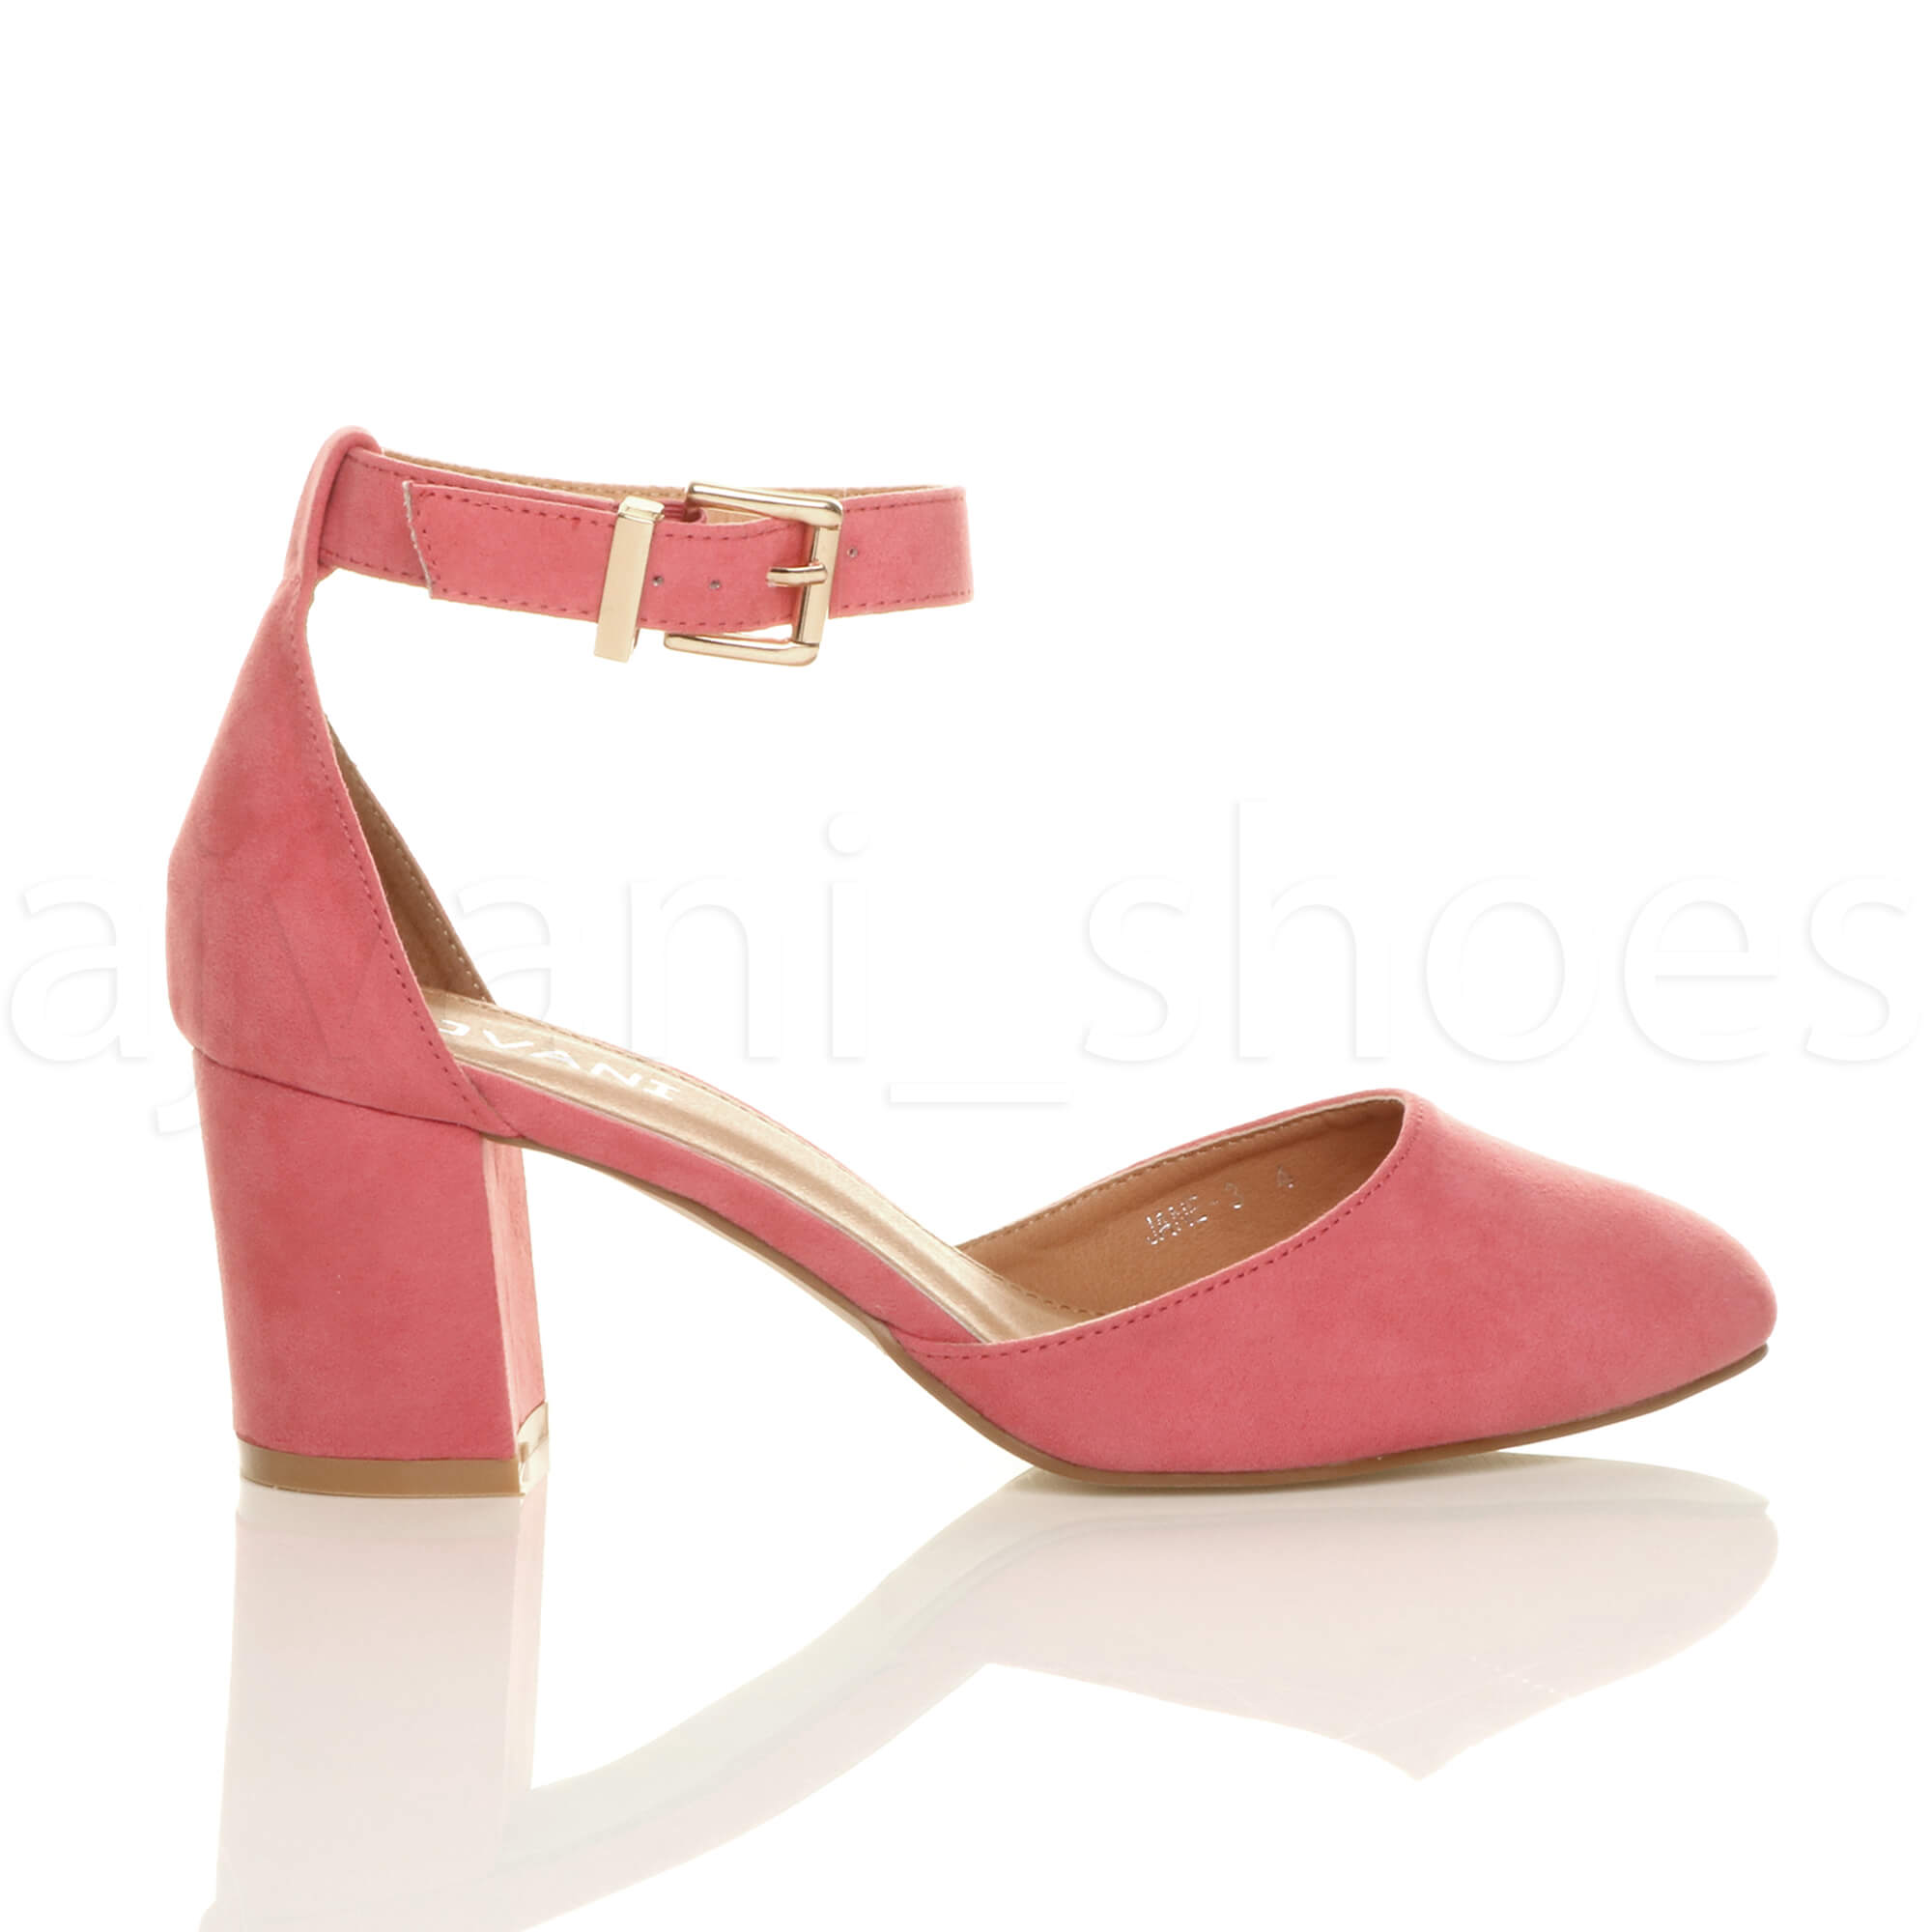 662736985160 WOMENS LADIES LOW MID BLOCK HEEL ANKLE STRAP MARY JANE .